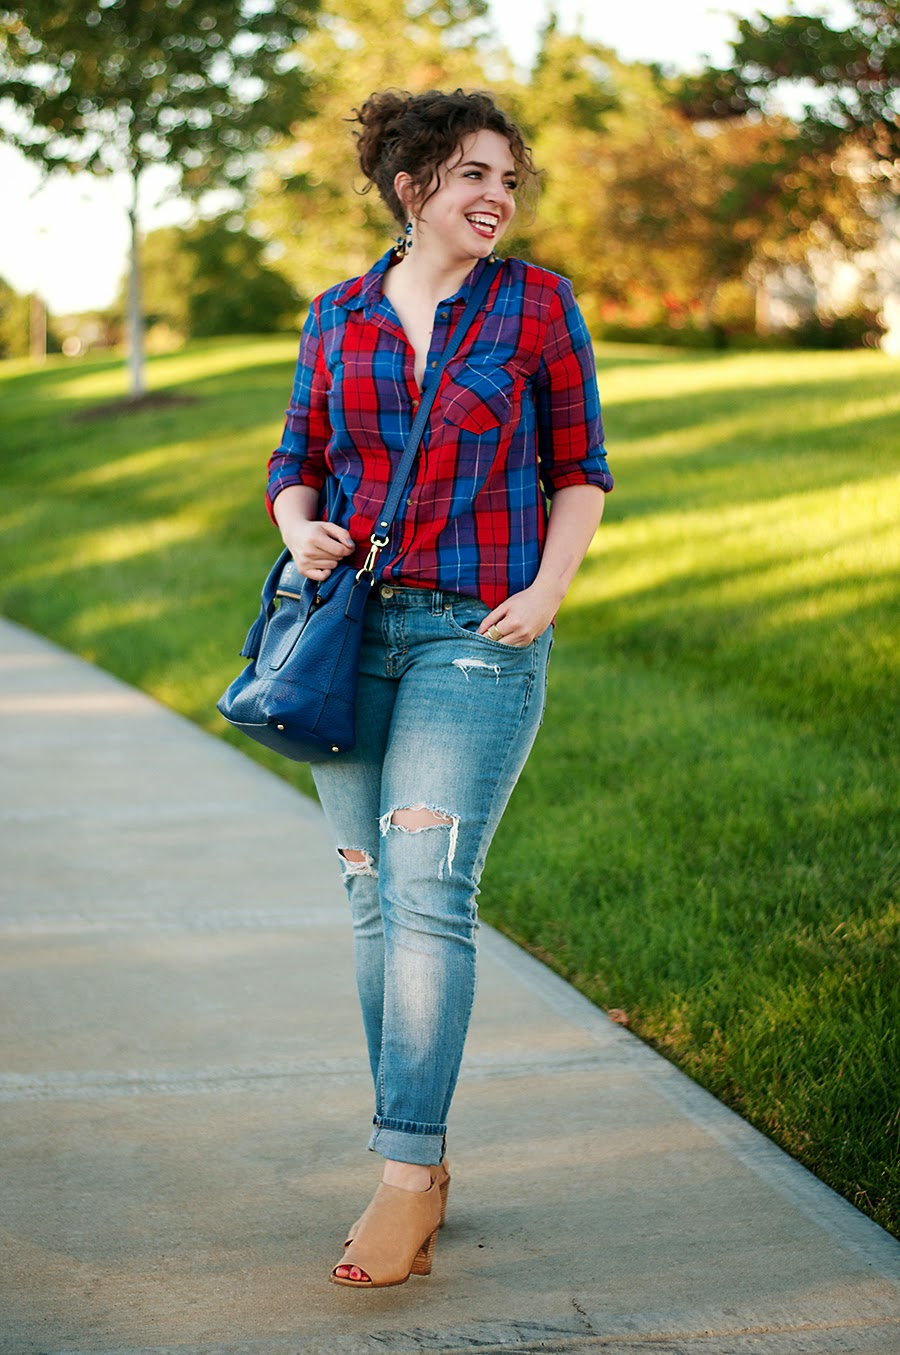 Plaid fall outfit idea